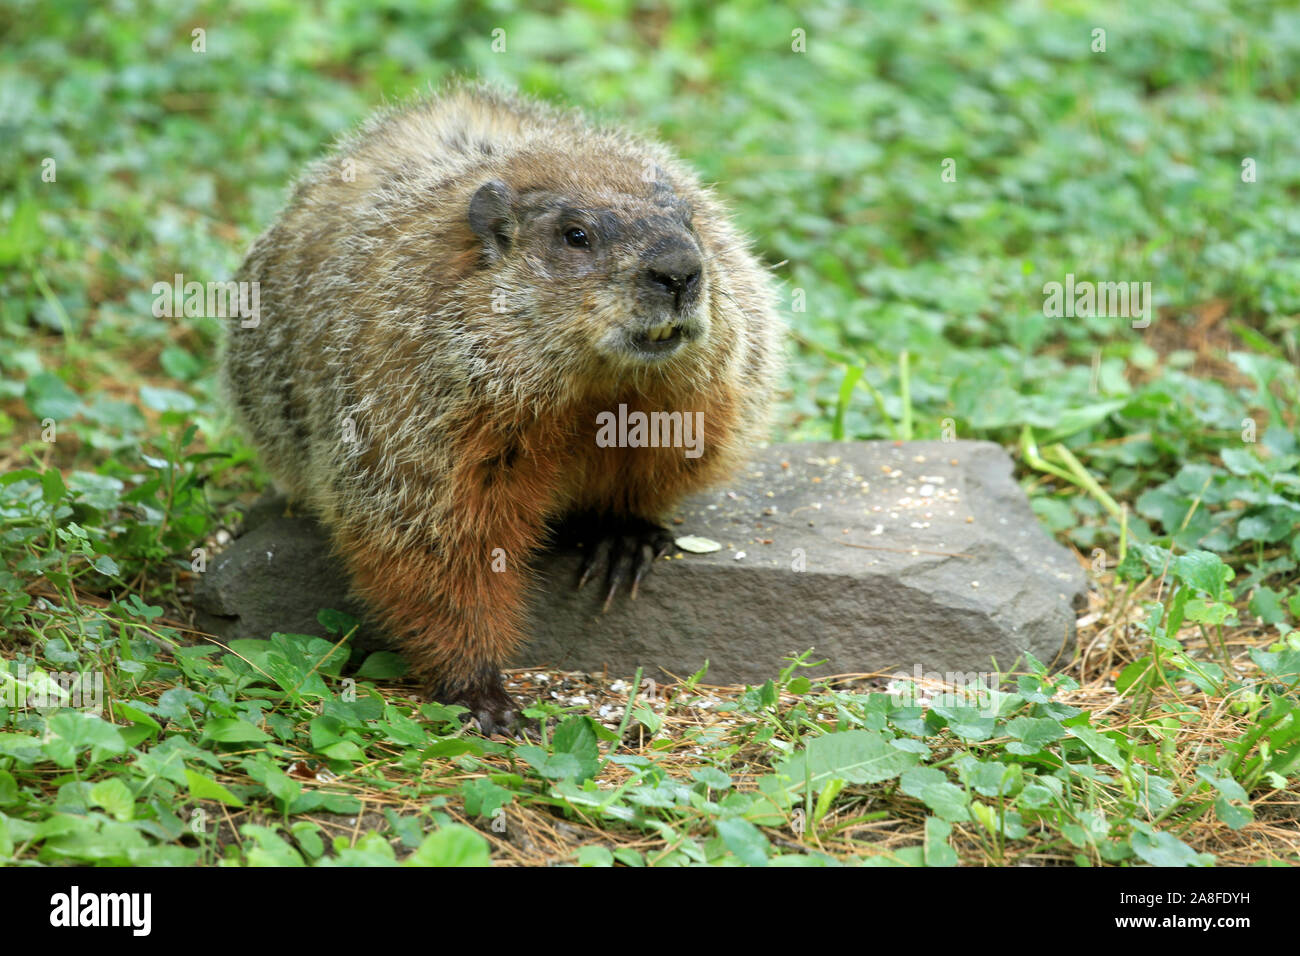 Groundhog (Marmota monax) with visible incisors sitting on a rock during a New England Spring Stock Photo